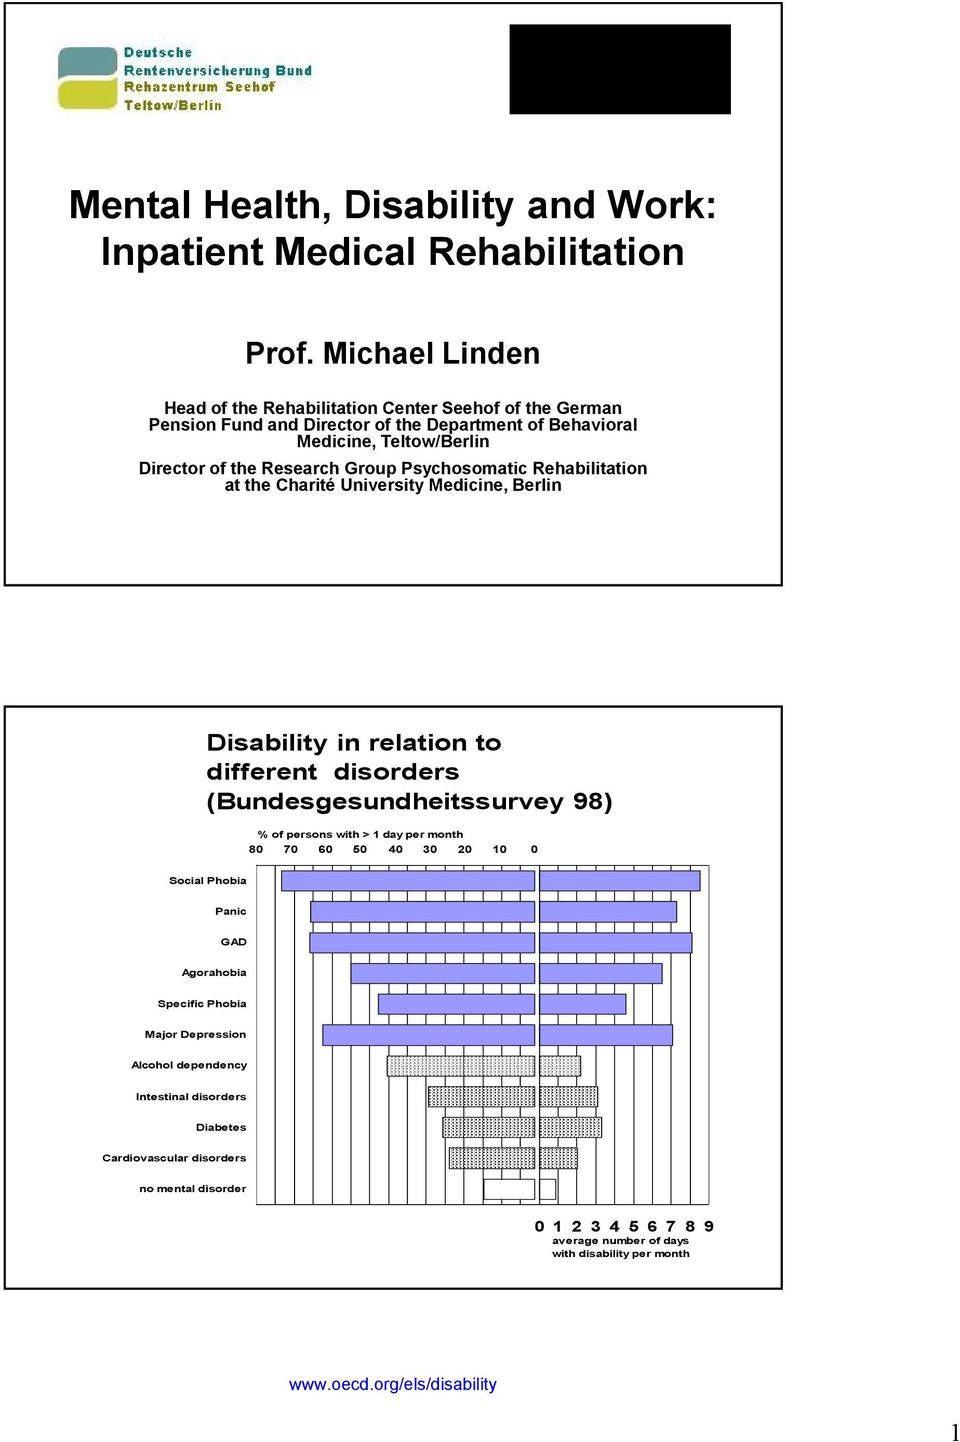 Psychosomatic Rehabilitation at the Charité University Medicine, Berlin Disability in relation to different disorders (Bundesgesundheitssurvey 98) % of persons with > 1 day per month 8